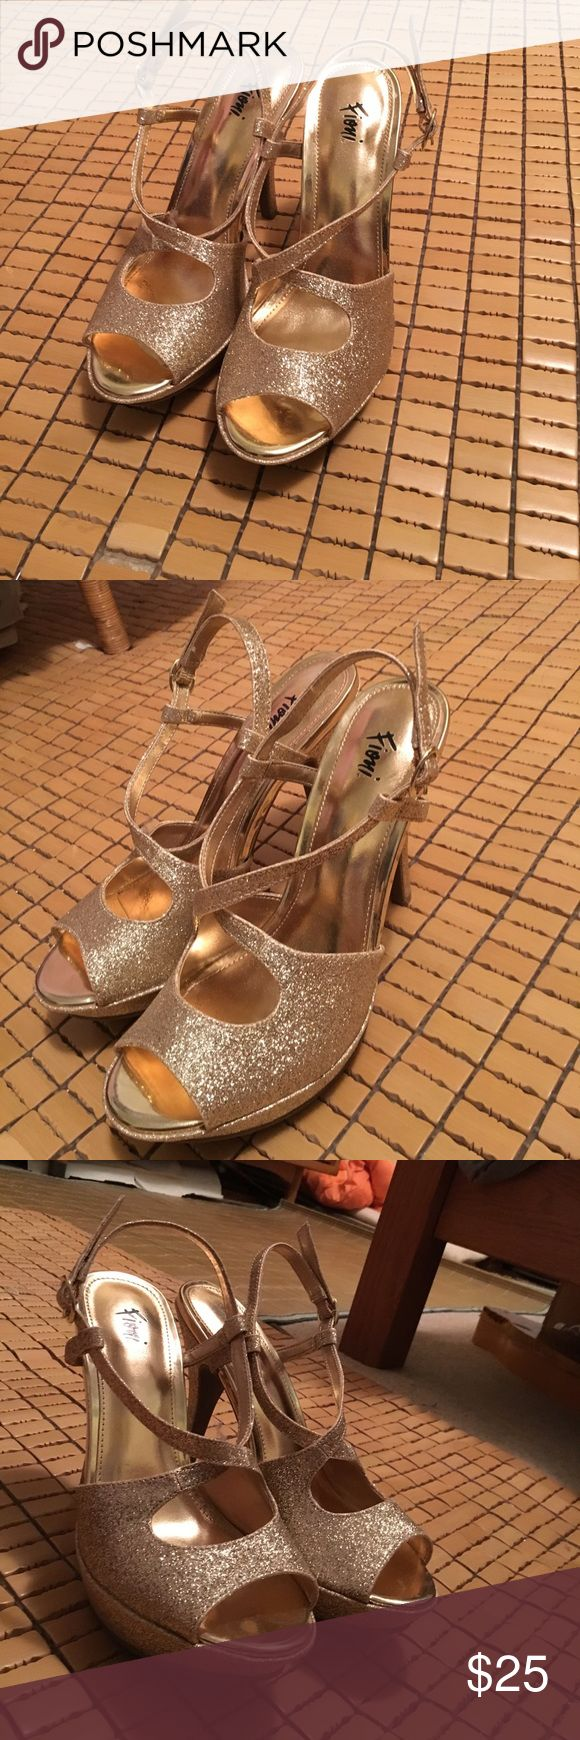 Sparkling Gold Heels Only worn once, for prom! These are perfect prom shoes, size 6 and the heels are 4 inches FIONI Clothing Shoes Heels